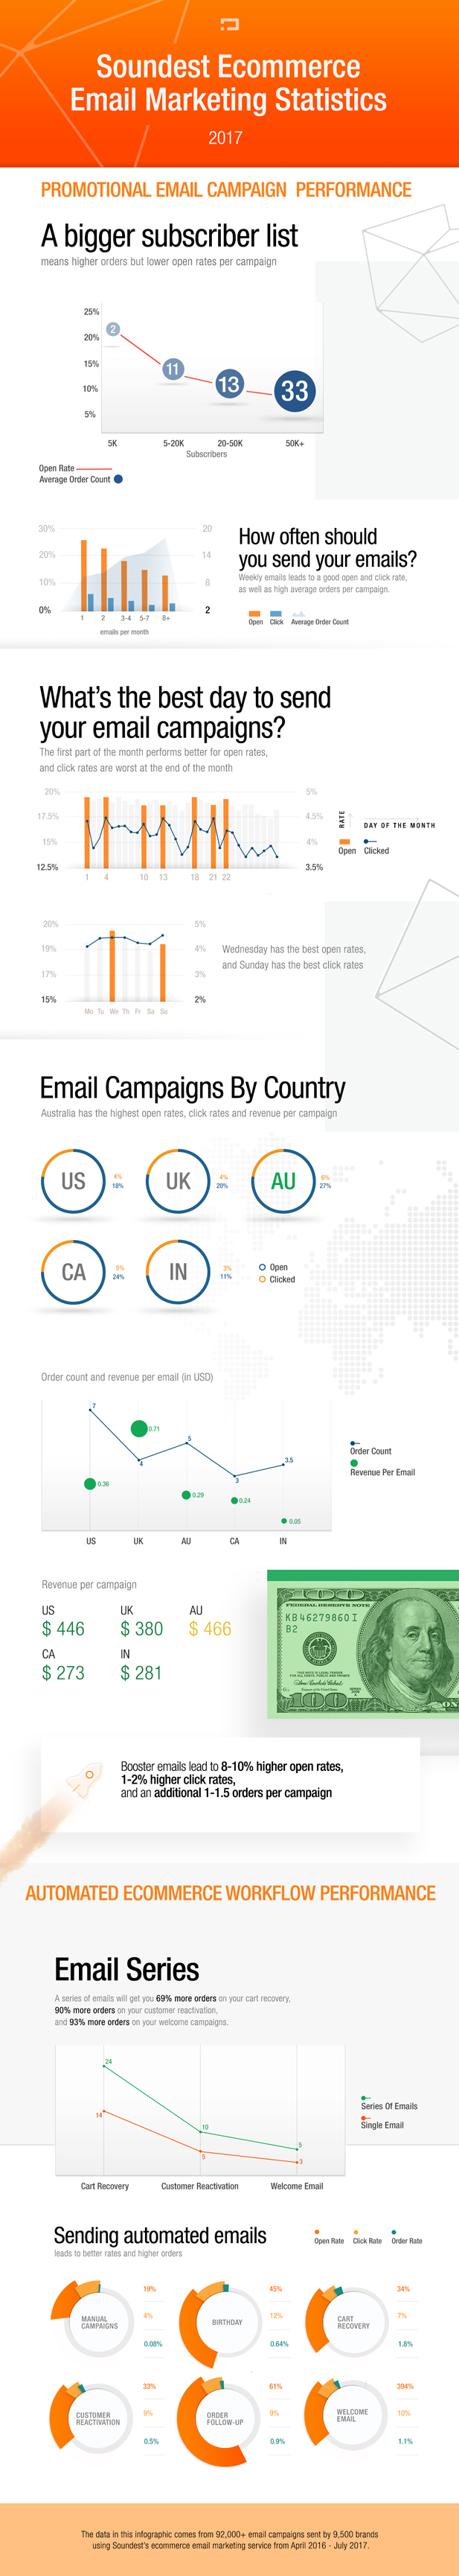 Soundest is proud to presents its Ecommerce Email Marketing Statistics for 2017